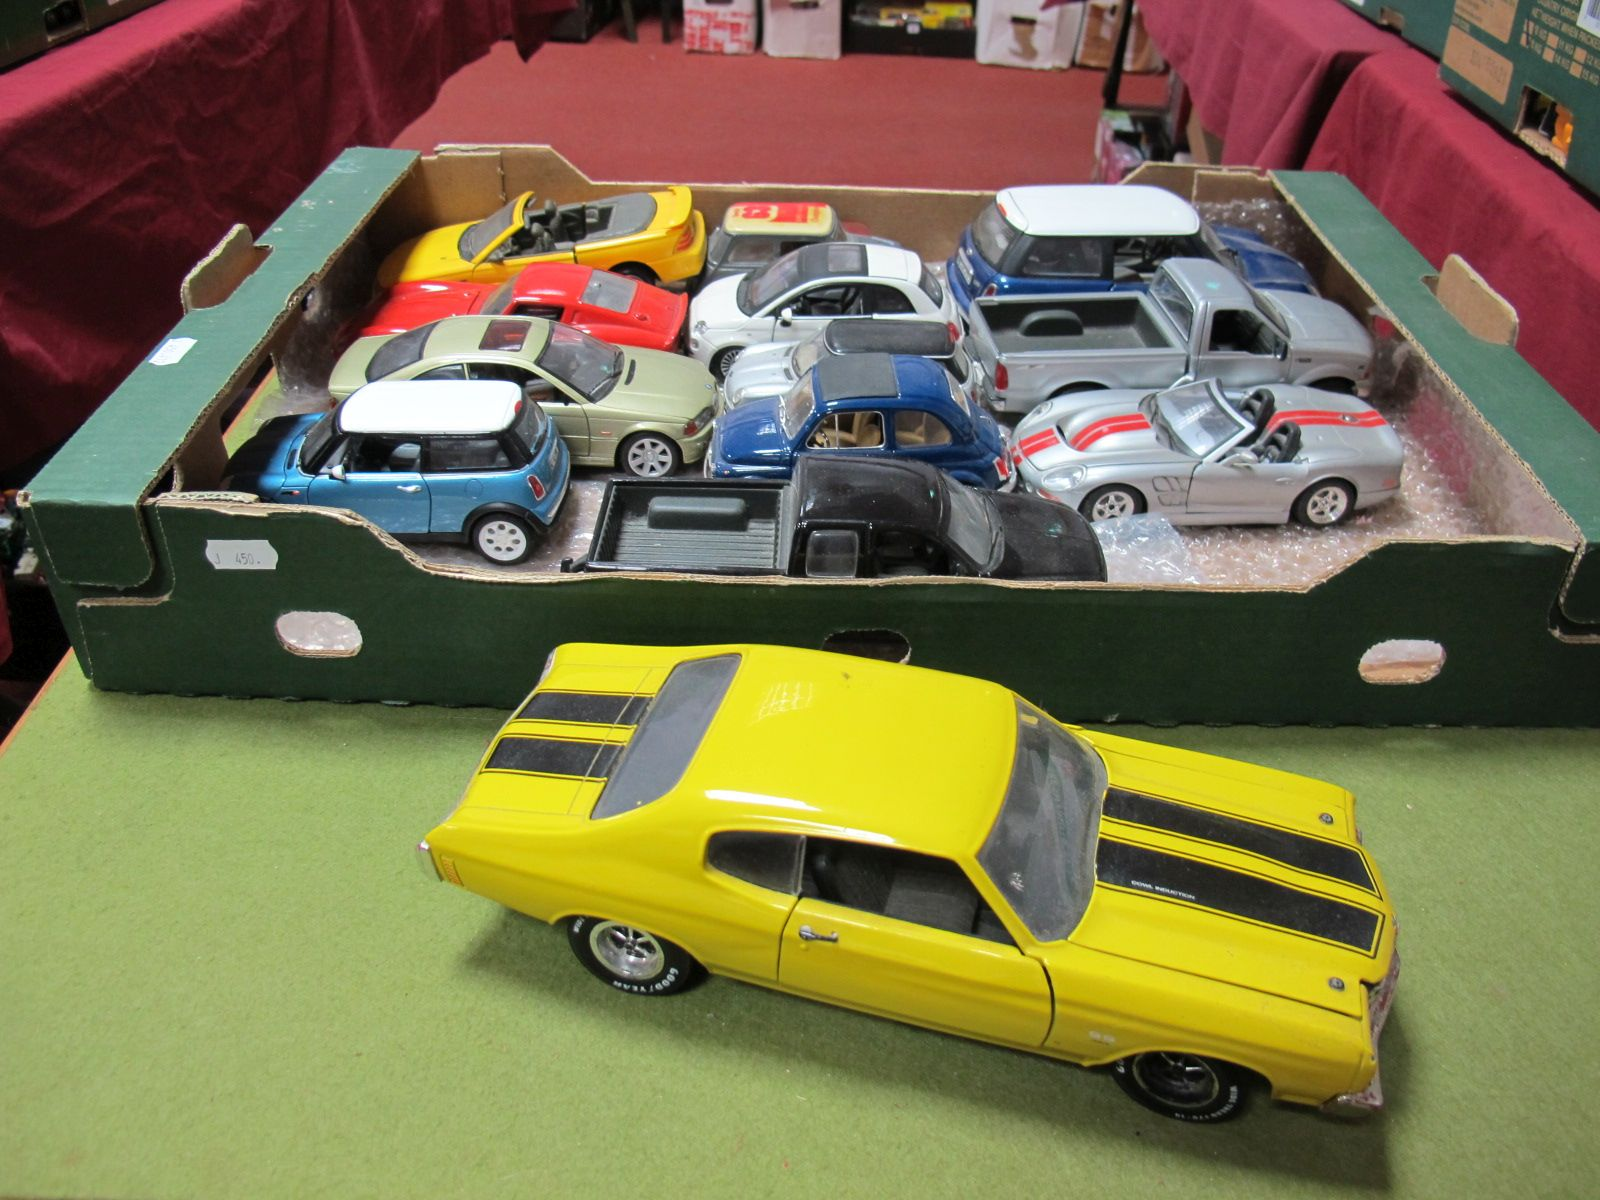 Lot 51 - Thirteen Diecast Model Cars of Varying Scale by ERTL, Burago, Maisto, including ERTL 1:18th scale